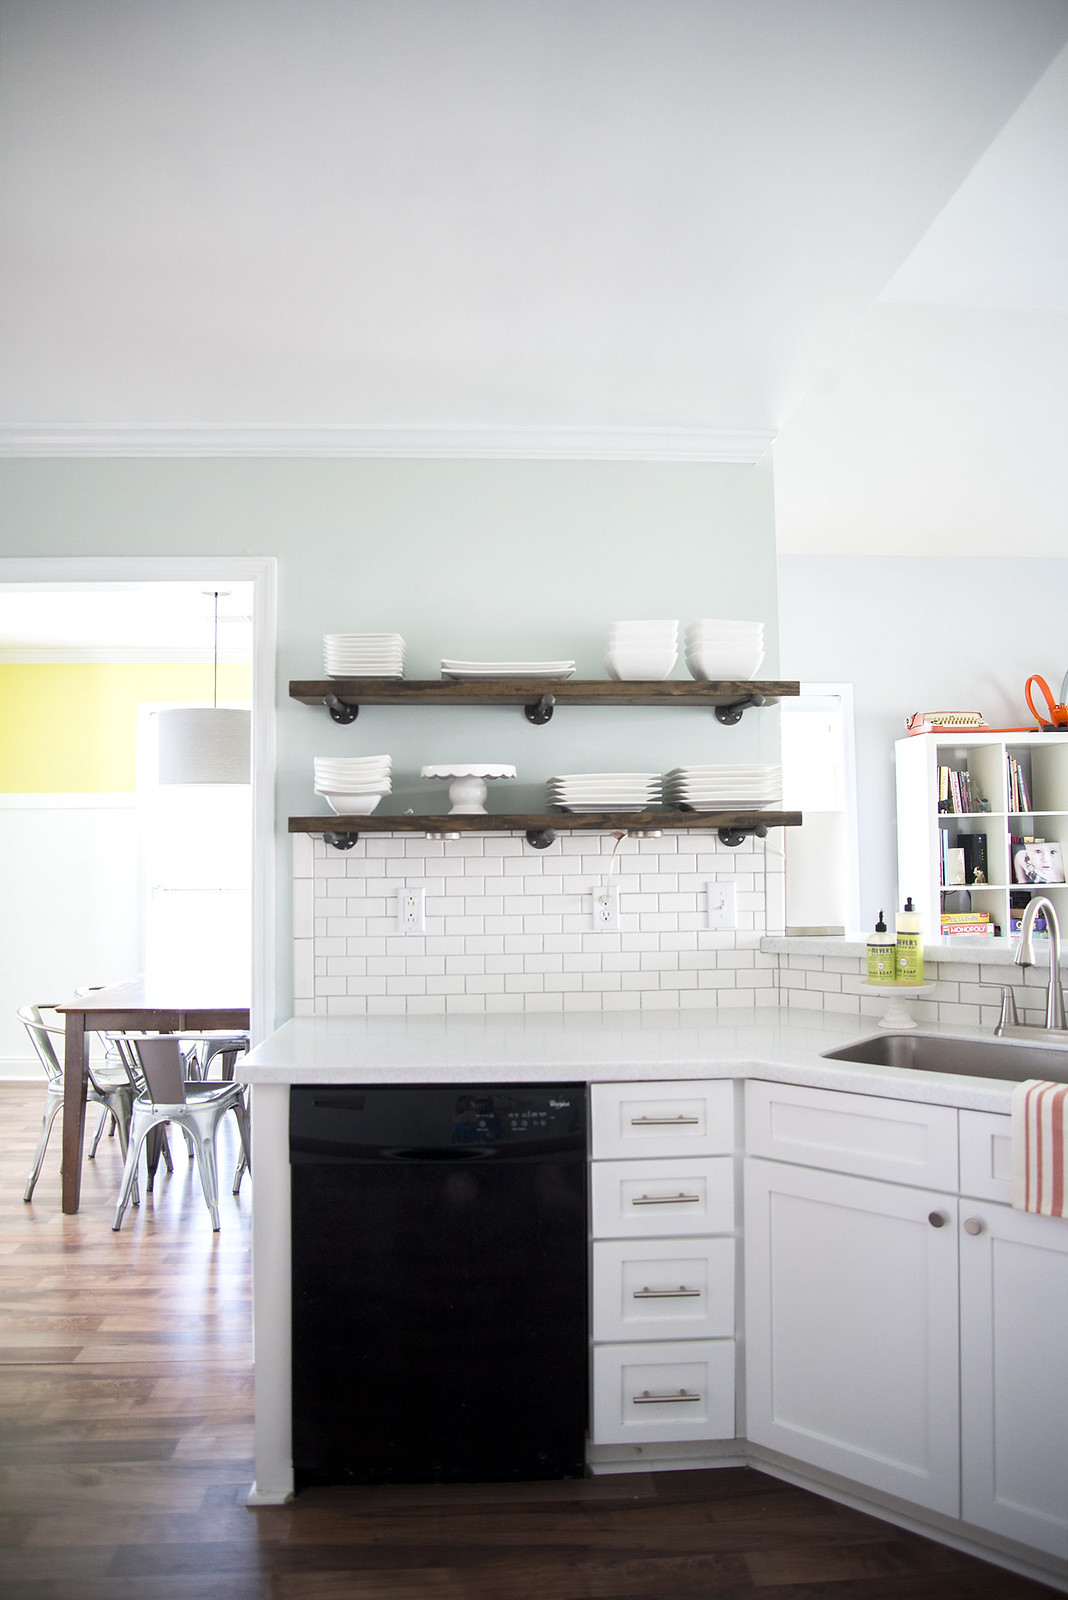 sewLOVED: the cove: kitchen